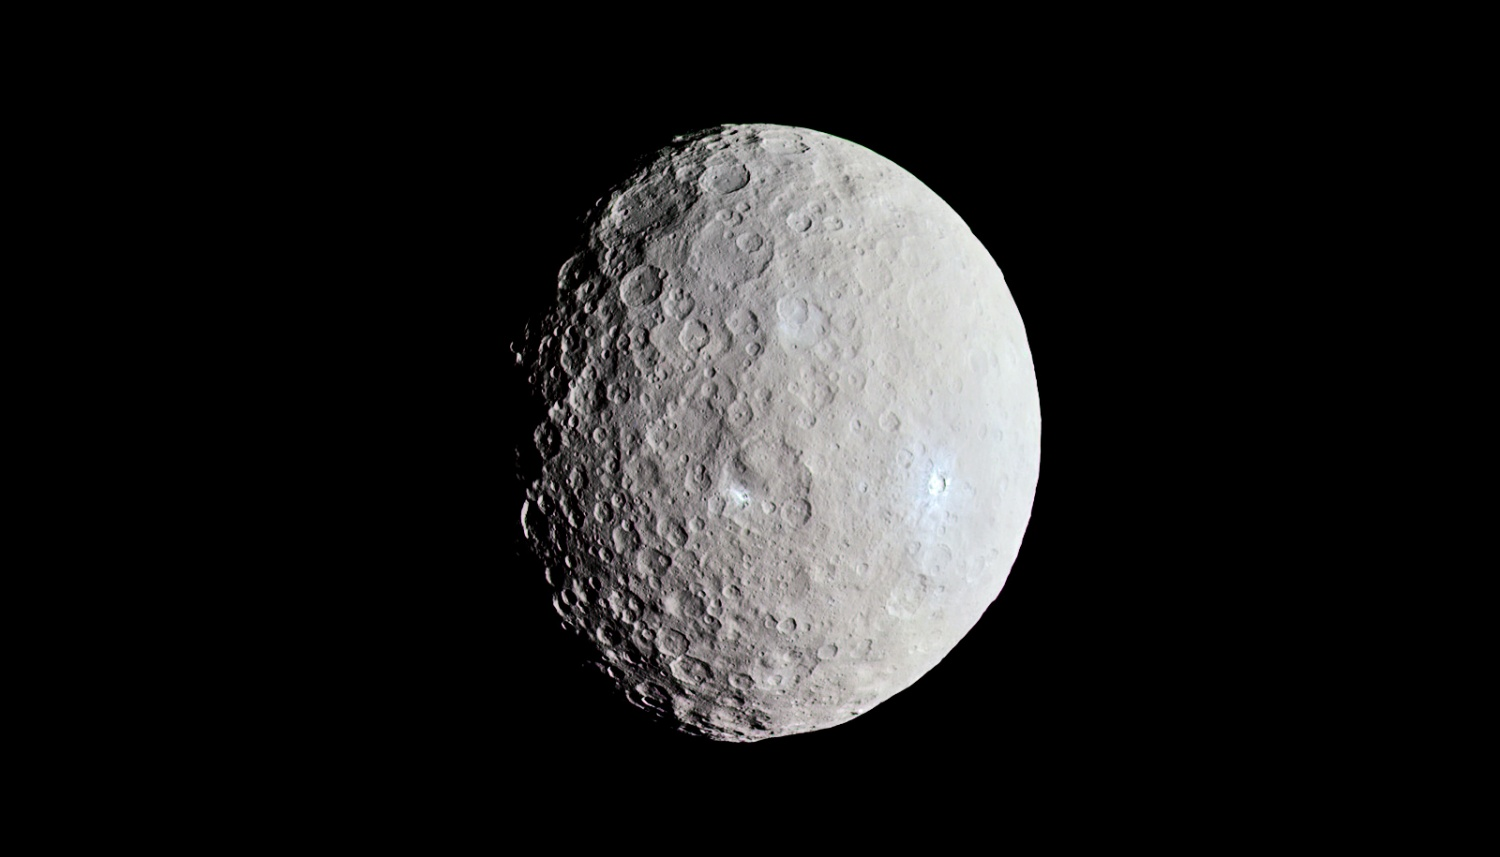 NASA: Mysterious Dwarf Planet 'Ceres' is an Ocean World That ...